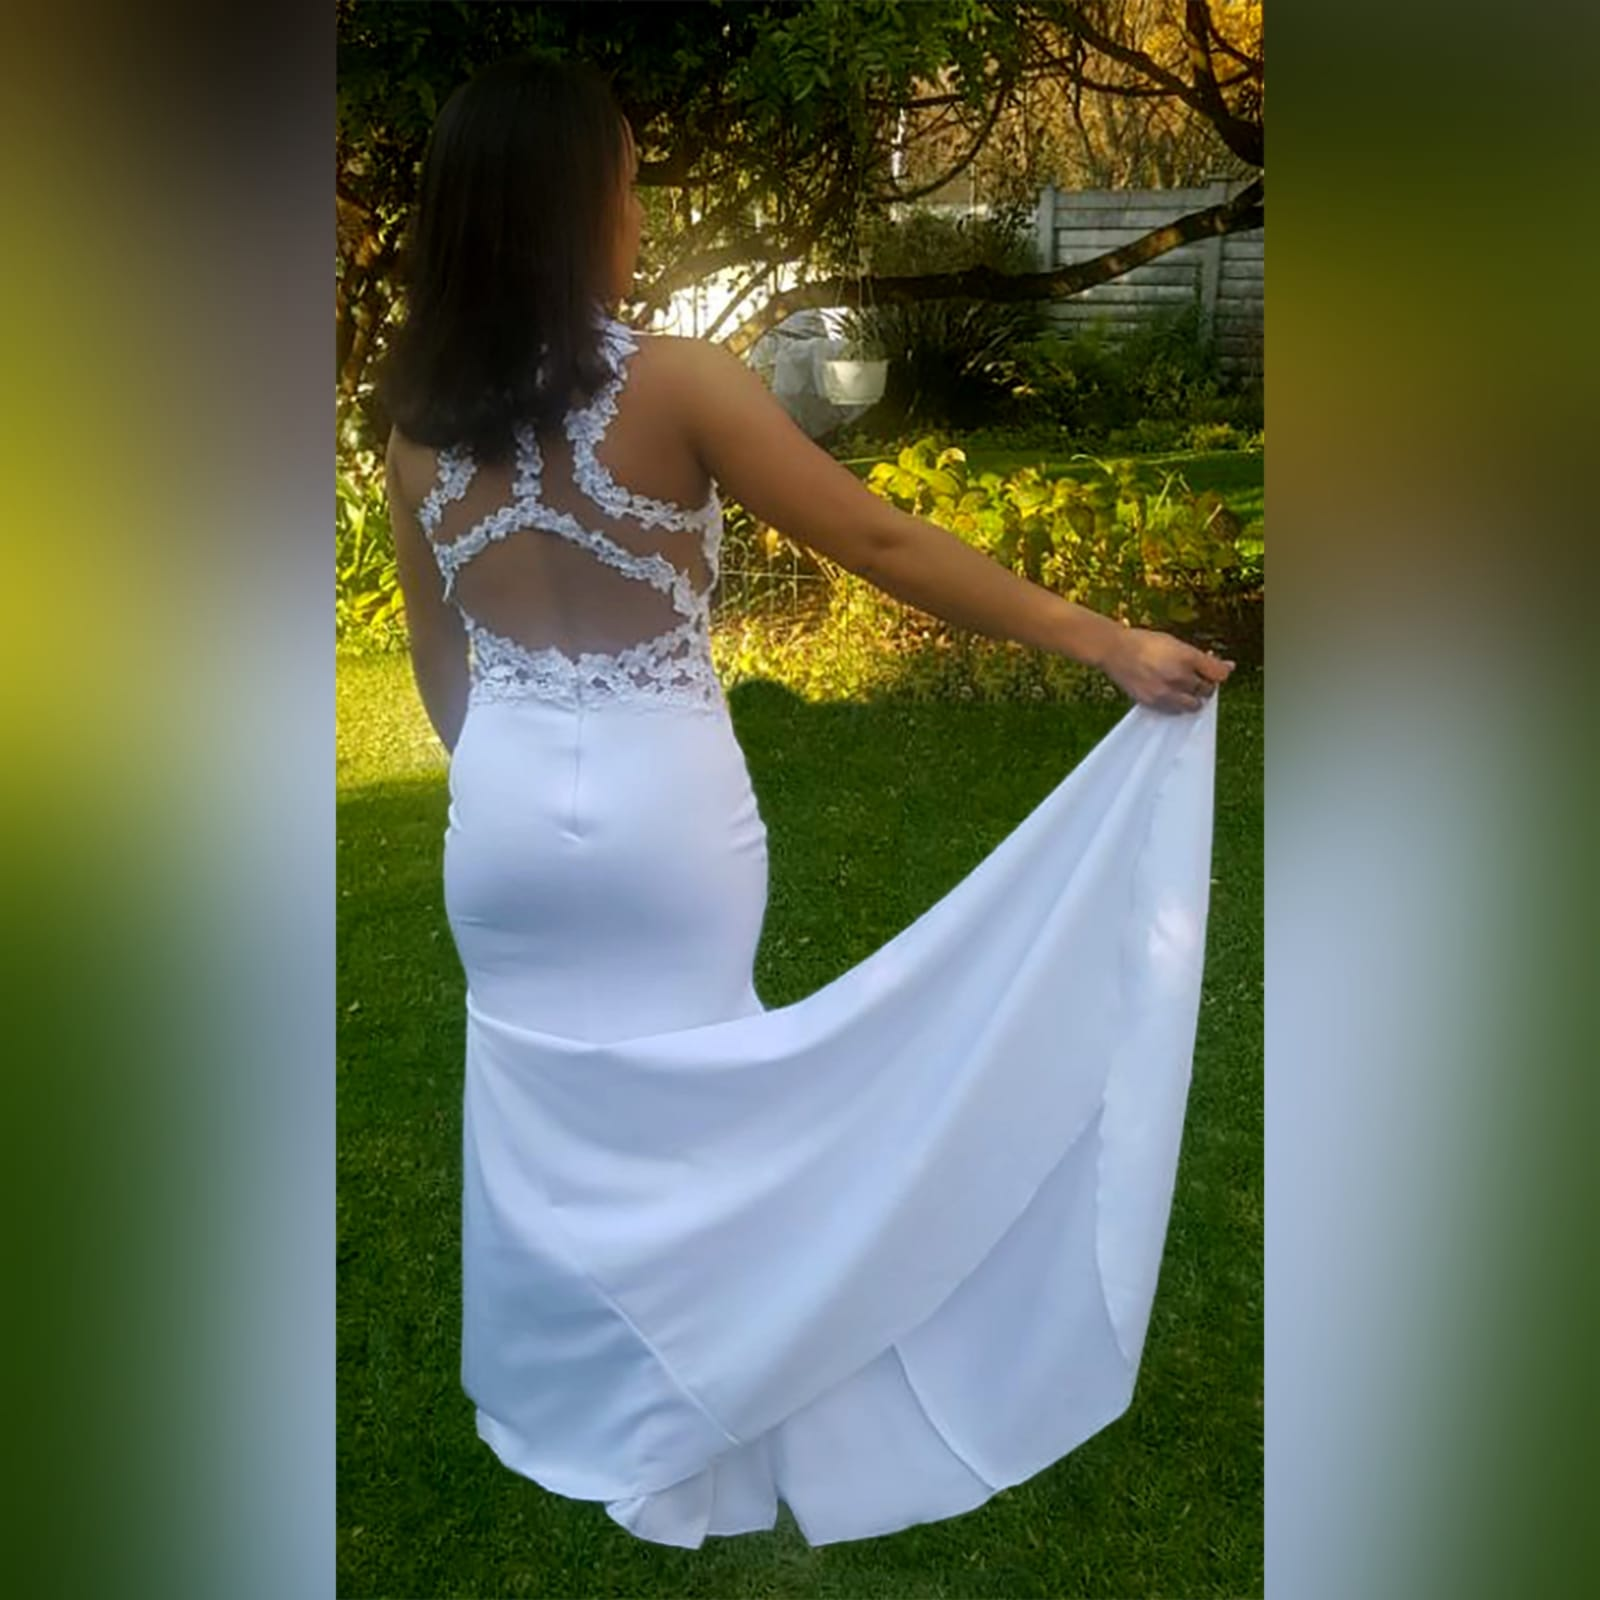 Choker white soft mermaid prom dress 1 white soft mermaid prom dress with a choker neckline and lace detail on the bodice, back & side tummy openings.